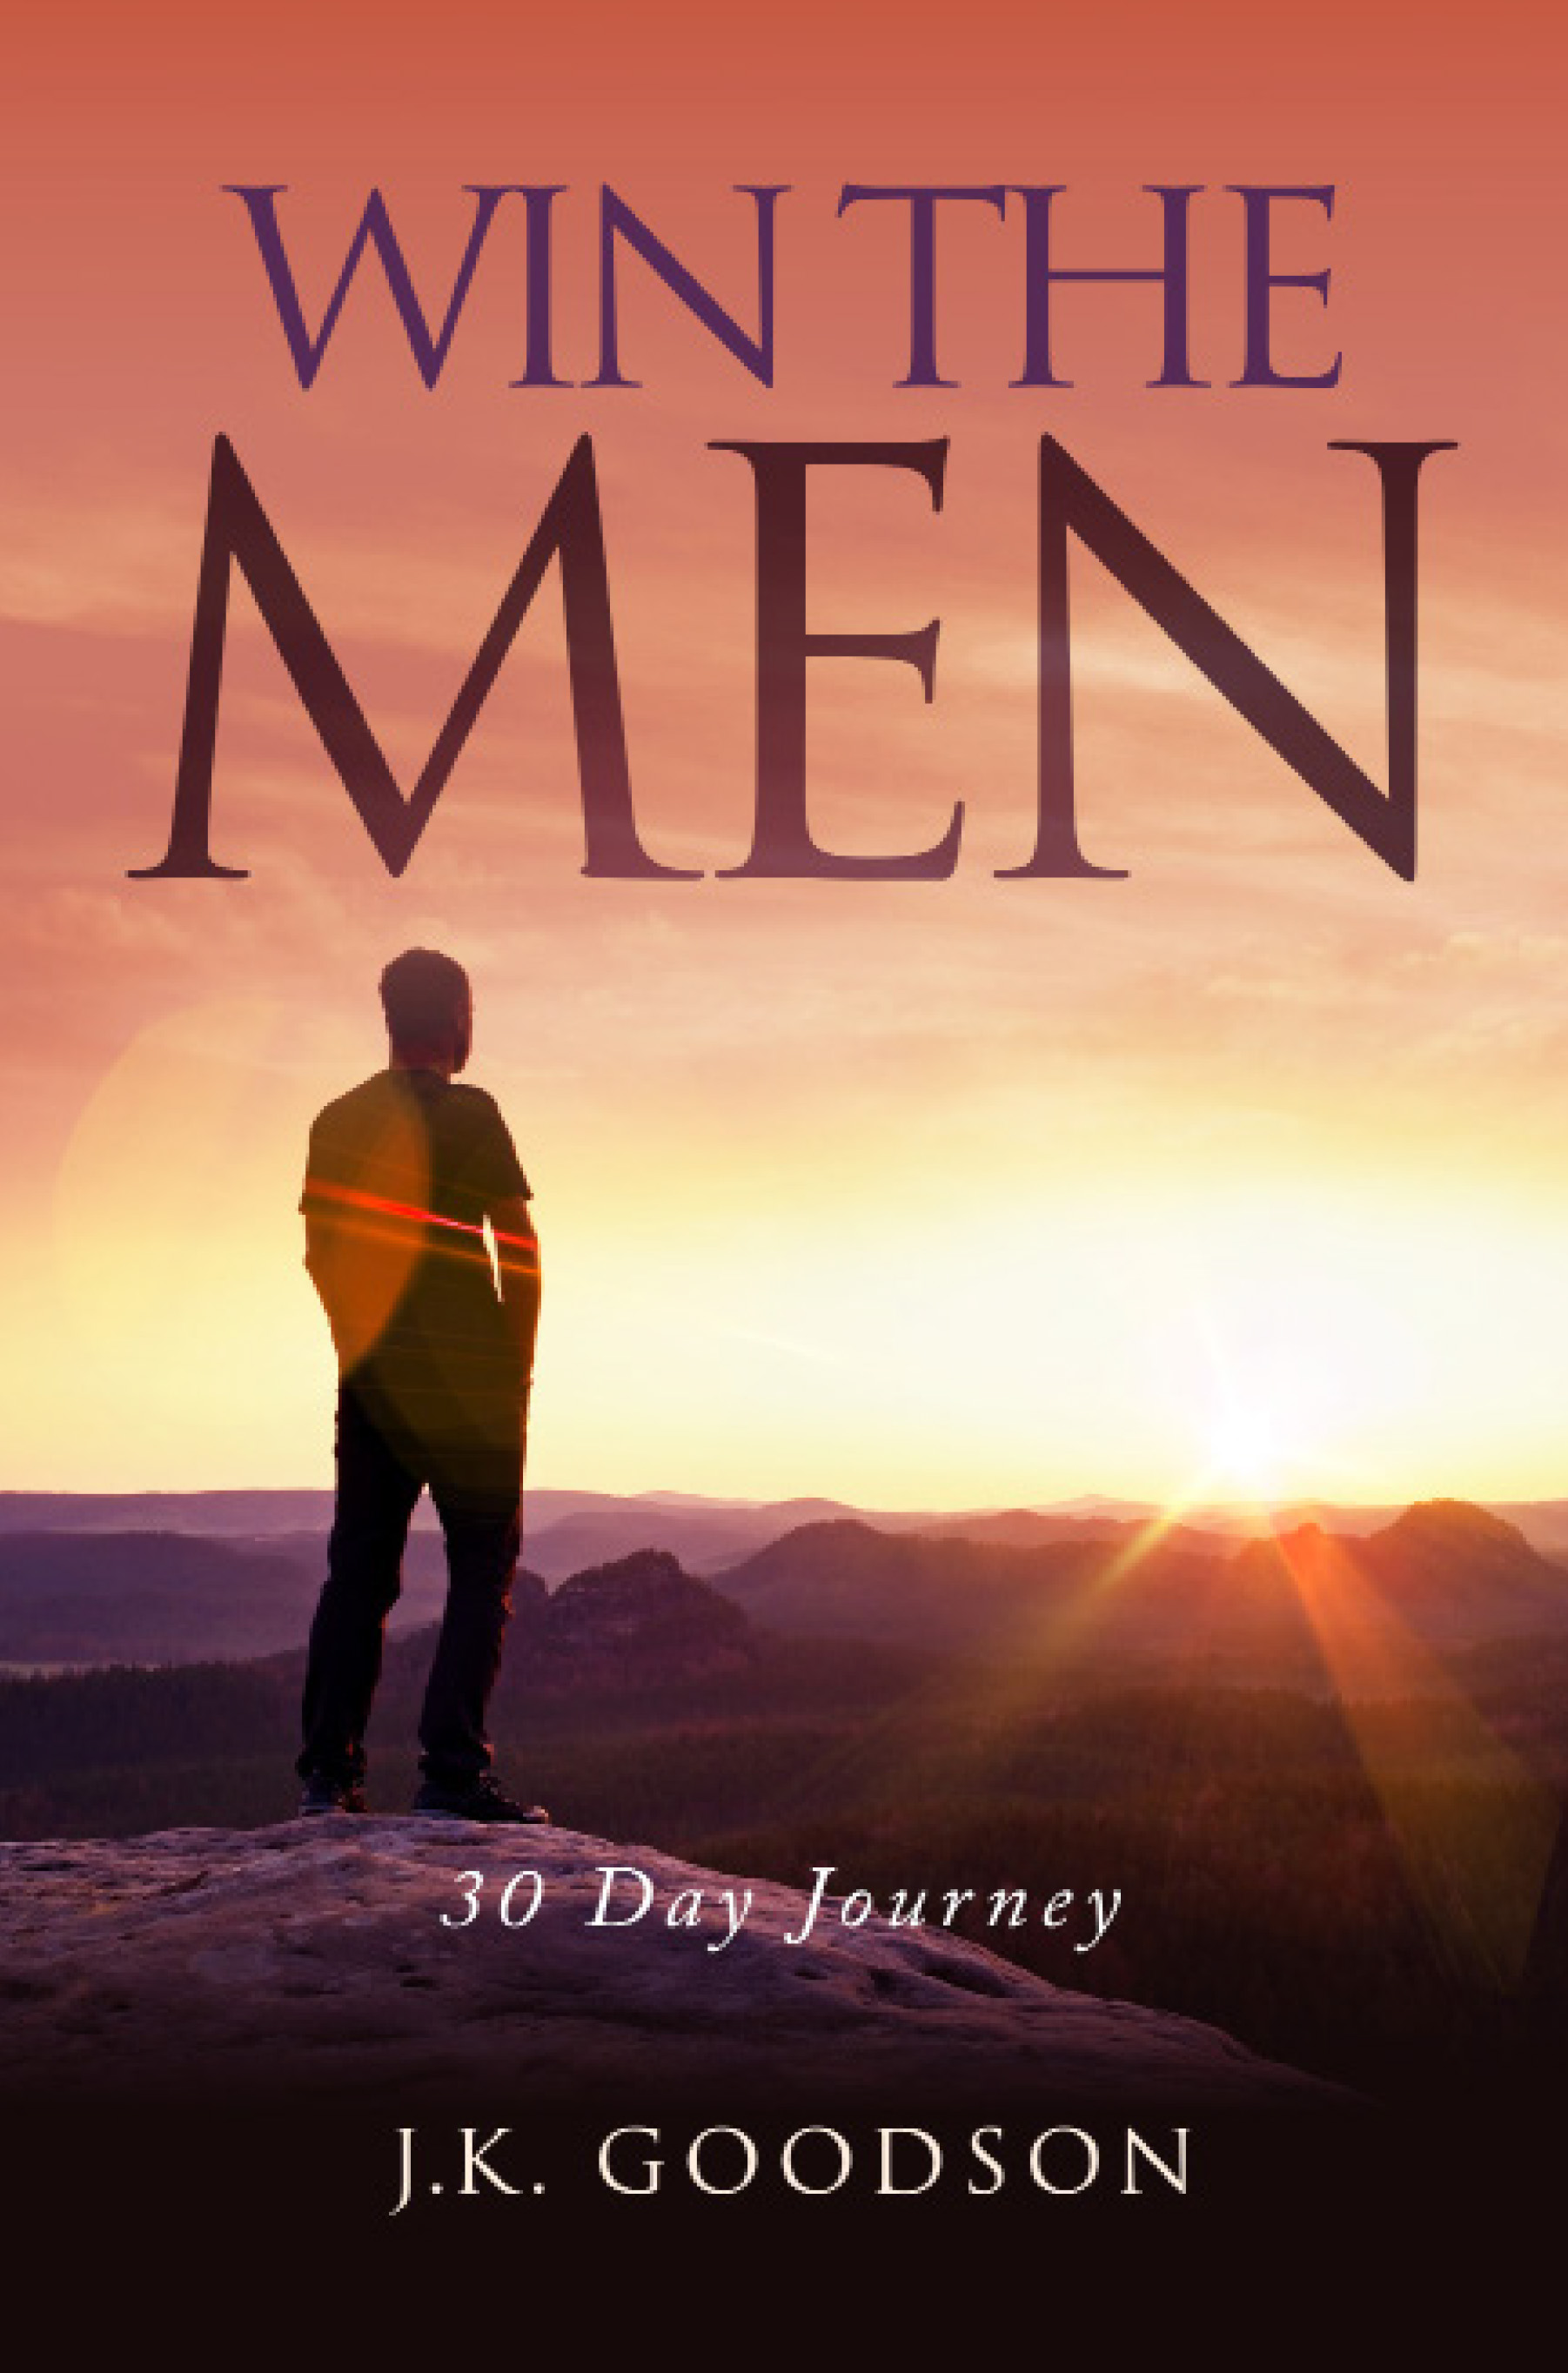 Men's Guide to Journey with Jesus by J.K. Goodson